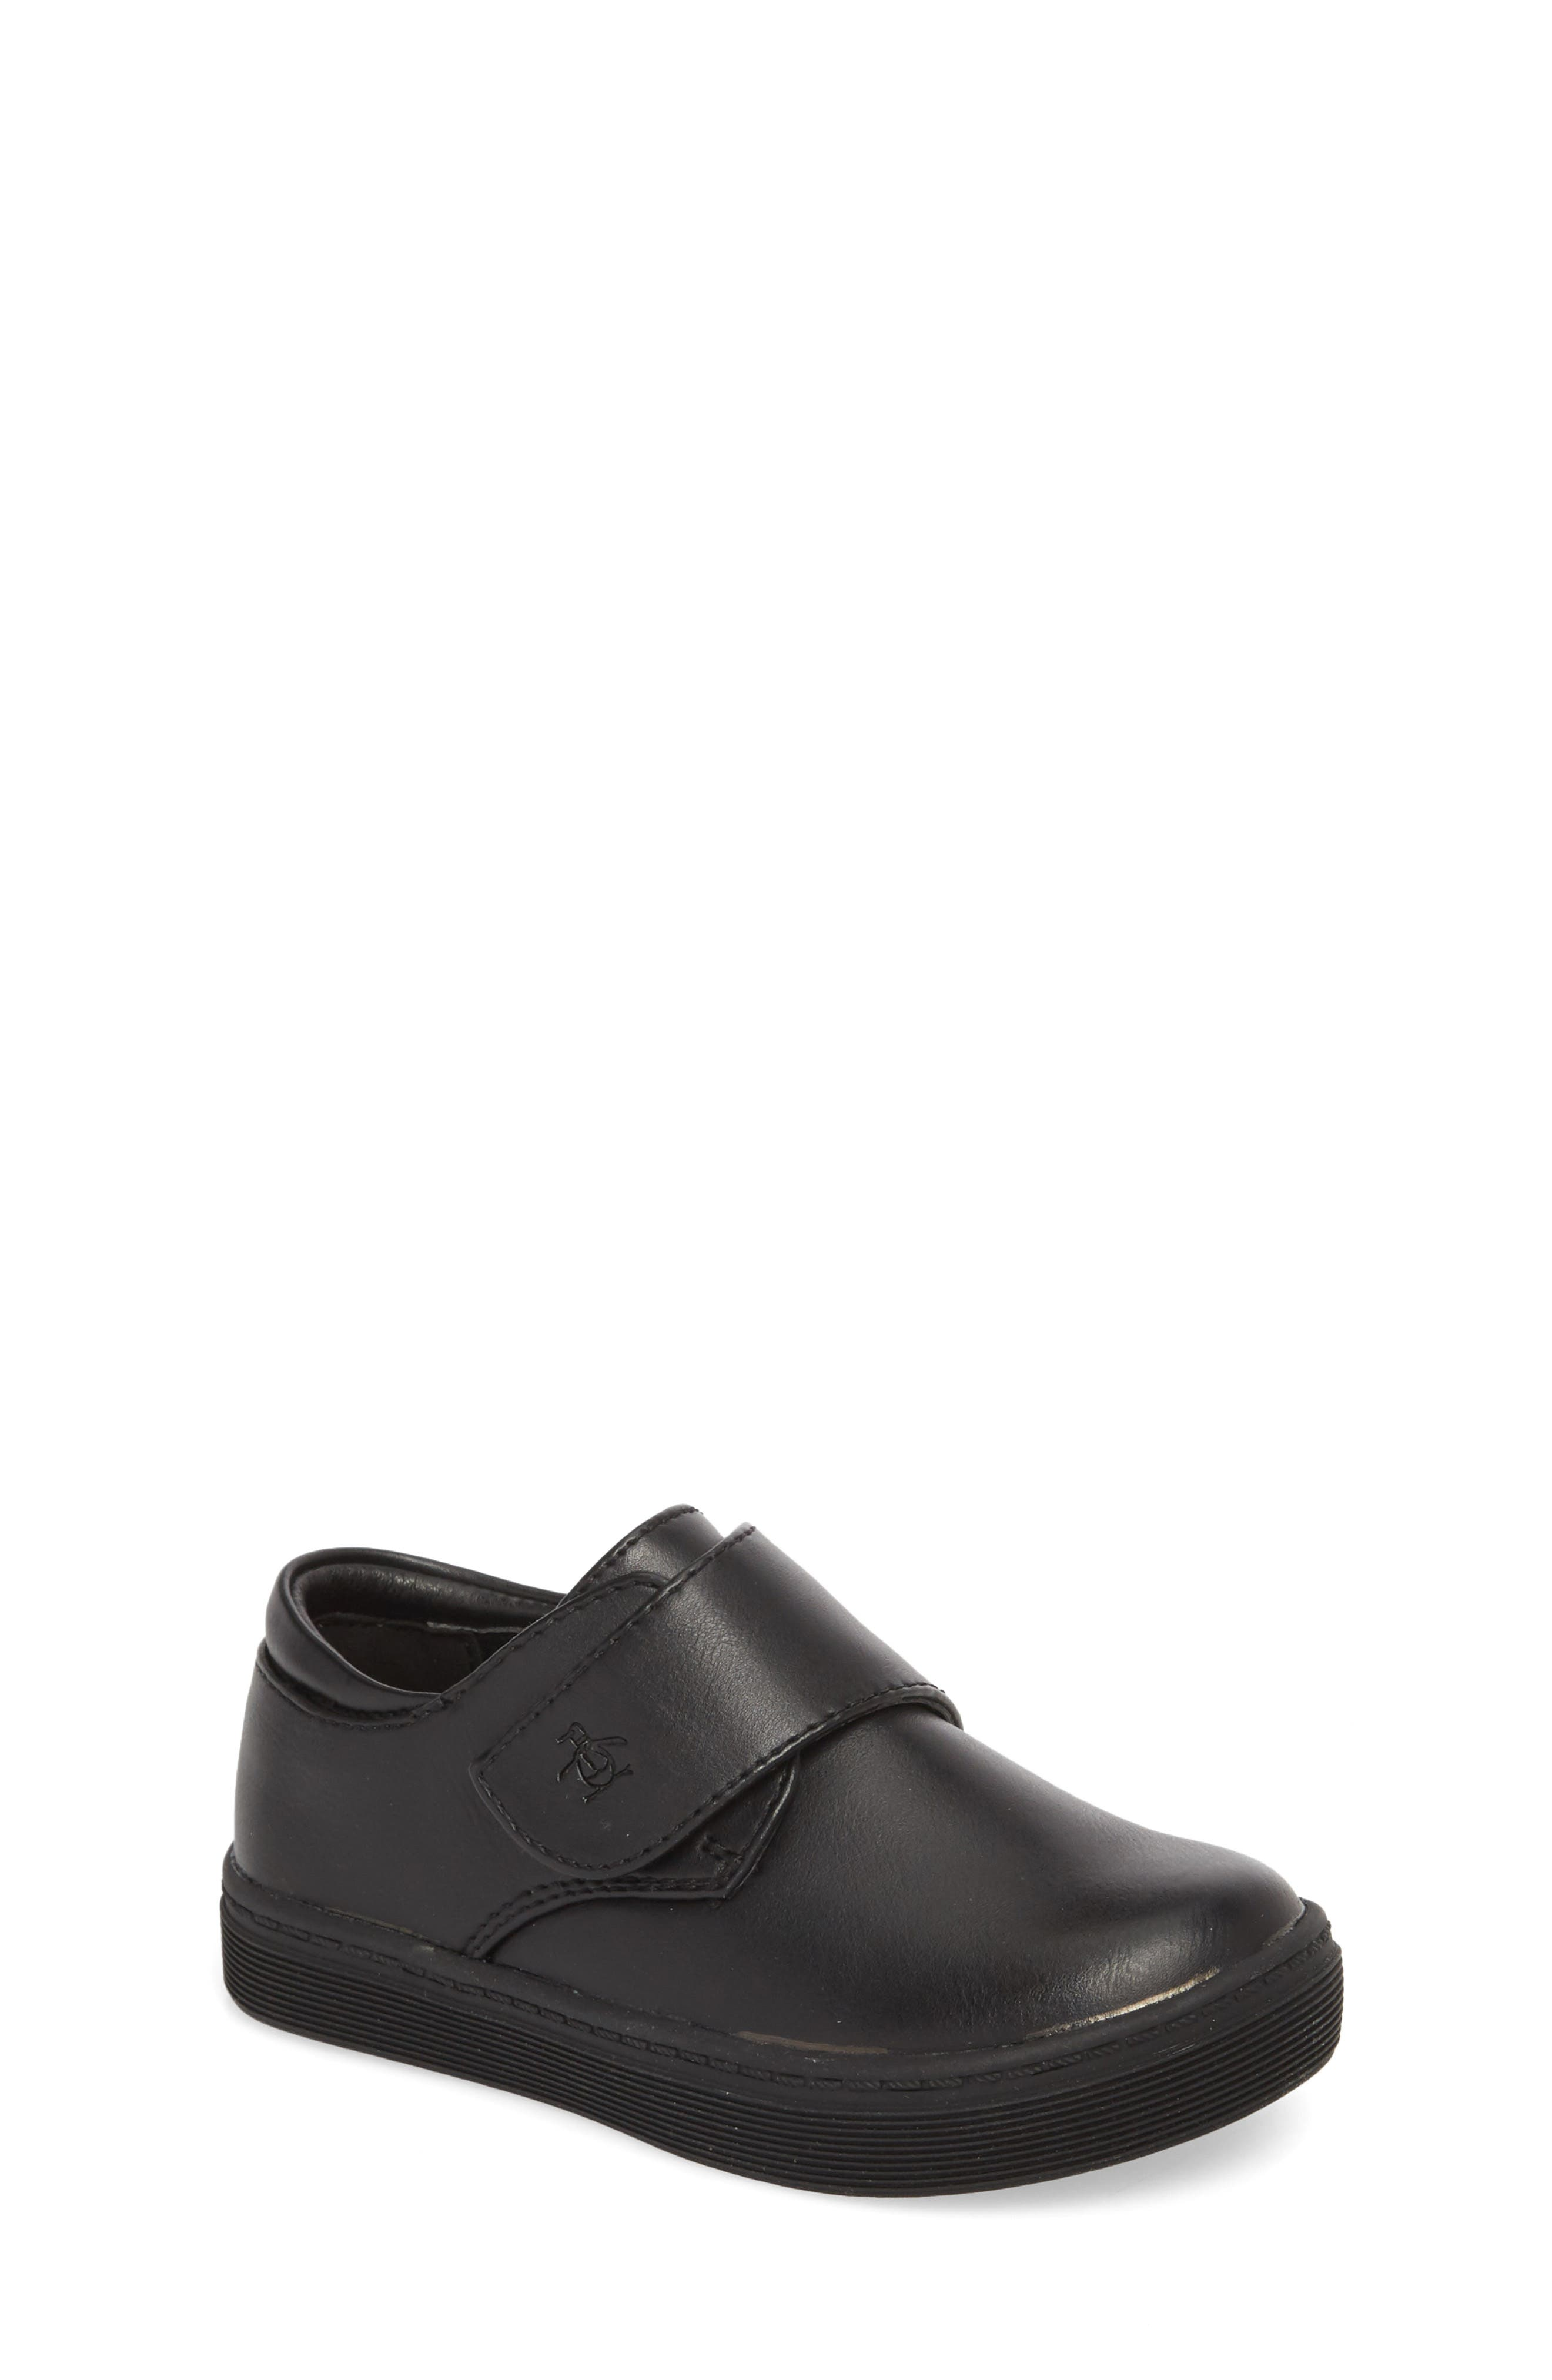 Felton Sneaker,                         Main,                         color, Black/ Black